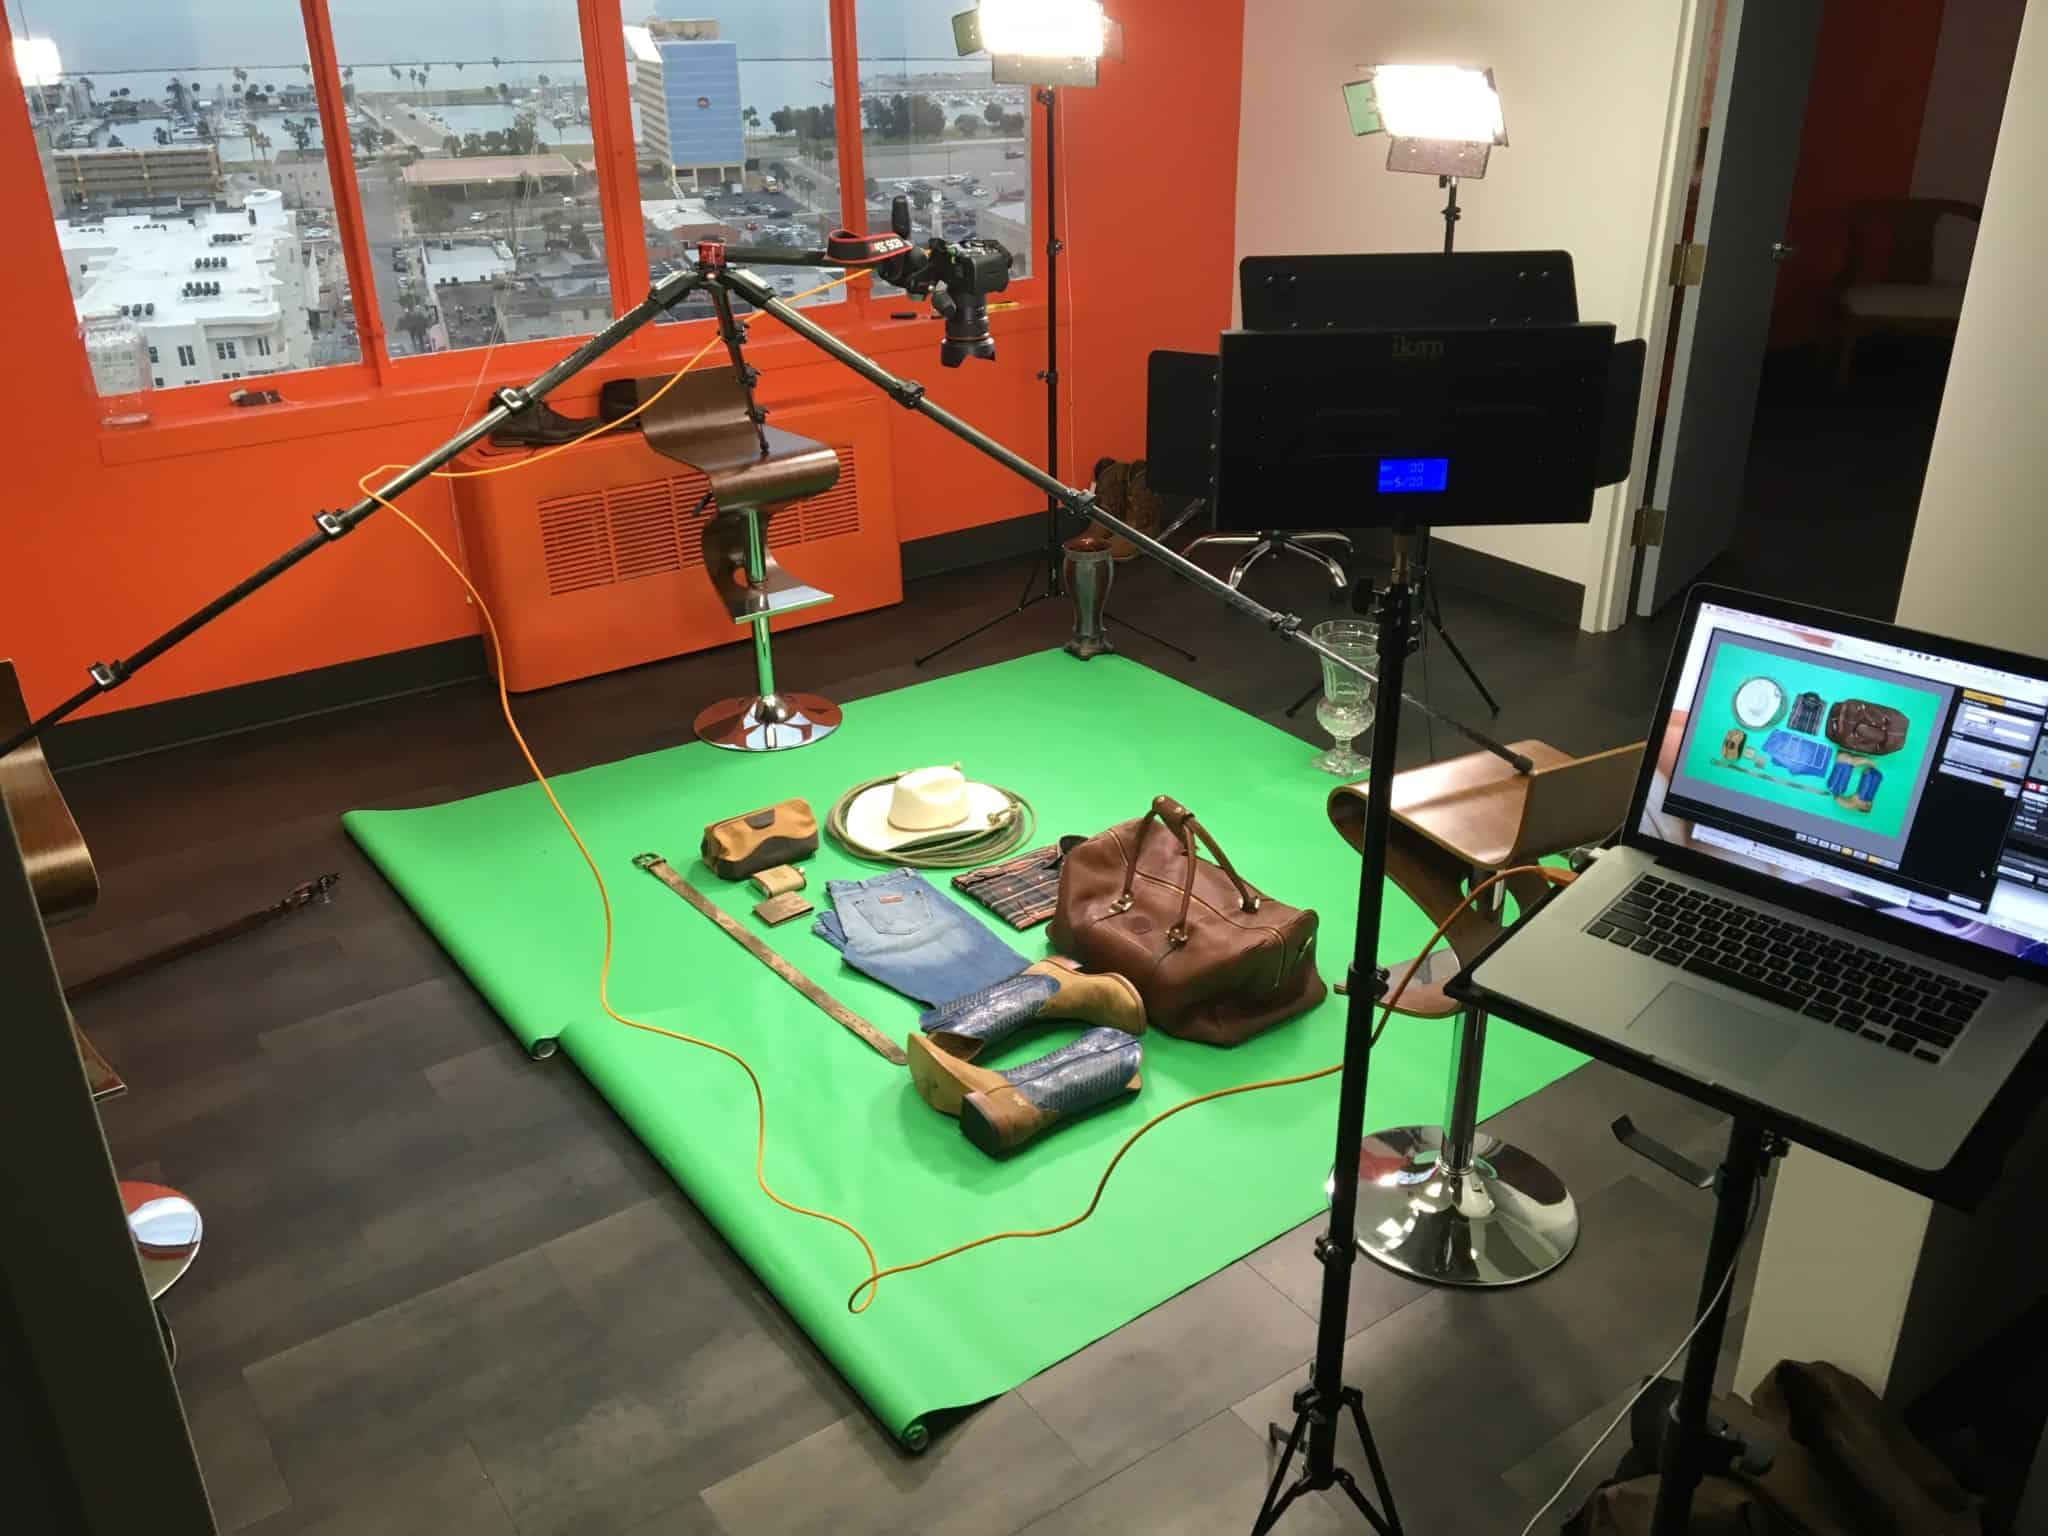 Studio set up for Corpus Christi Web Design, Branding and Photography